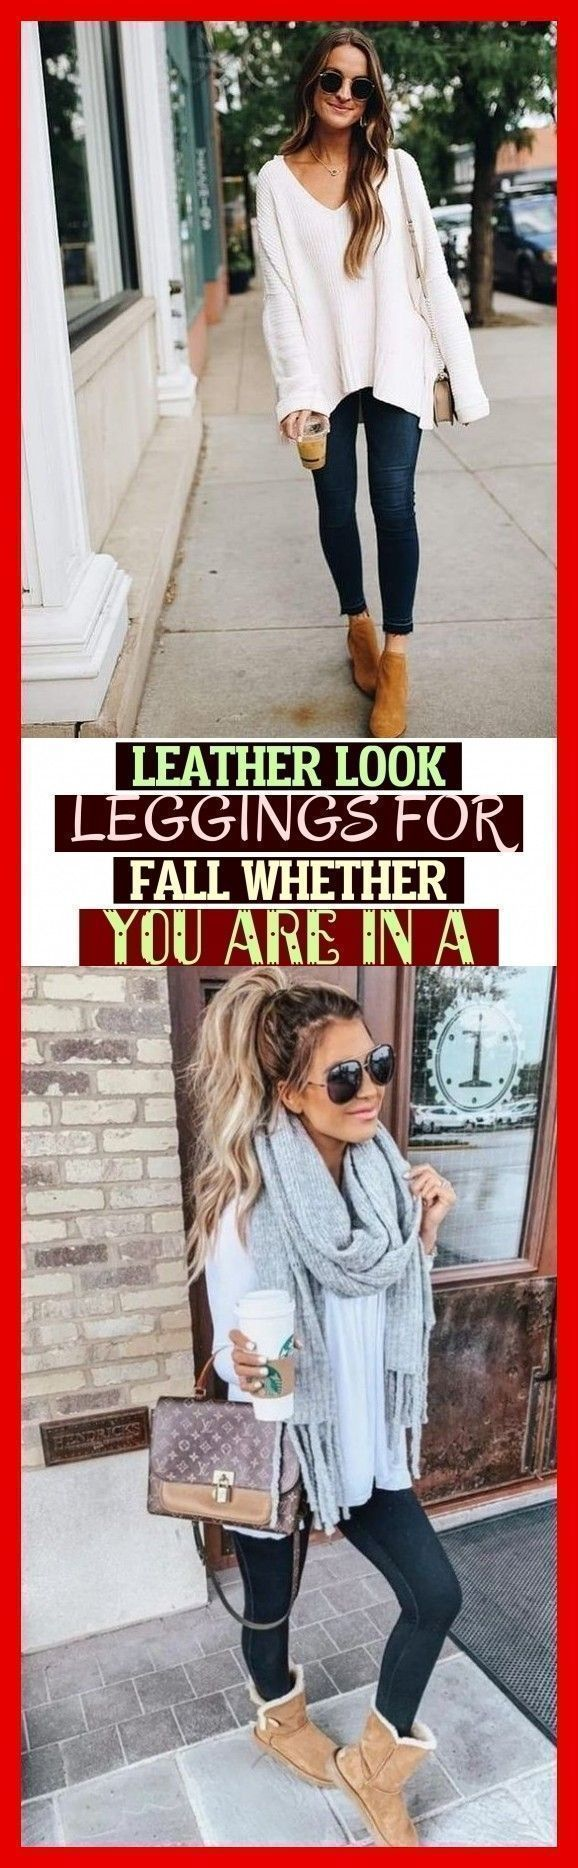 Runway Mode #outfits #leggins Herbstoutfits leggins Herbstoutfits 2018 Herbst T ...#herbst #herbstoutfits #leggins #mode #outfits #runway